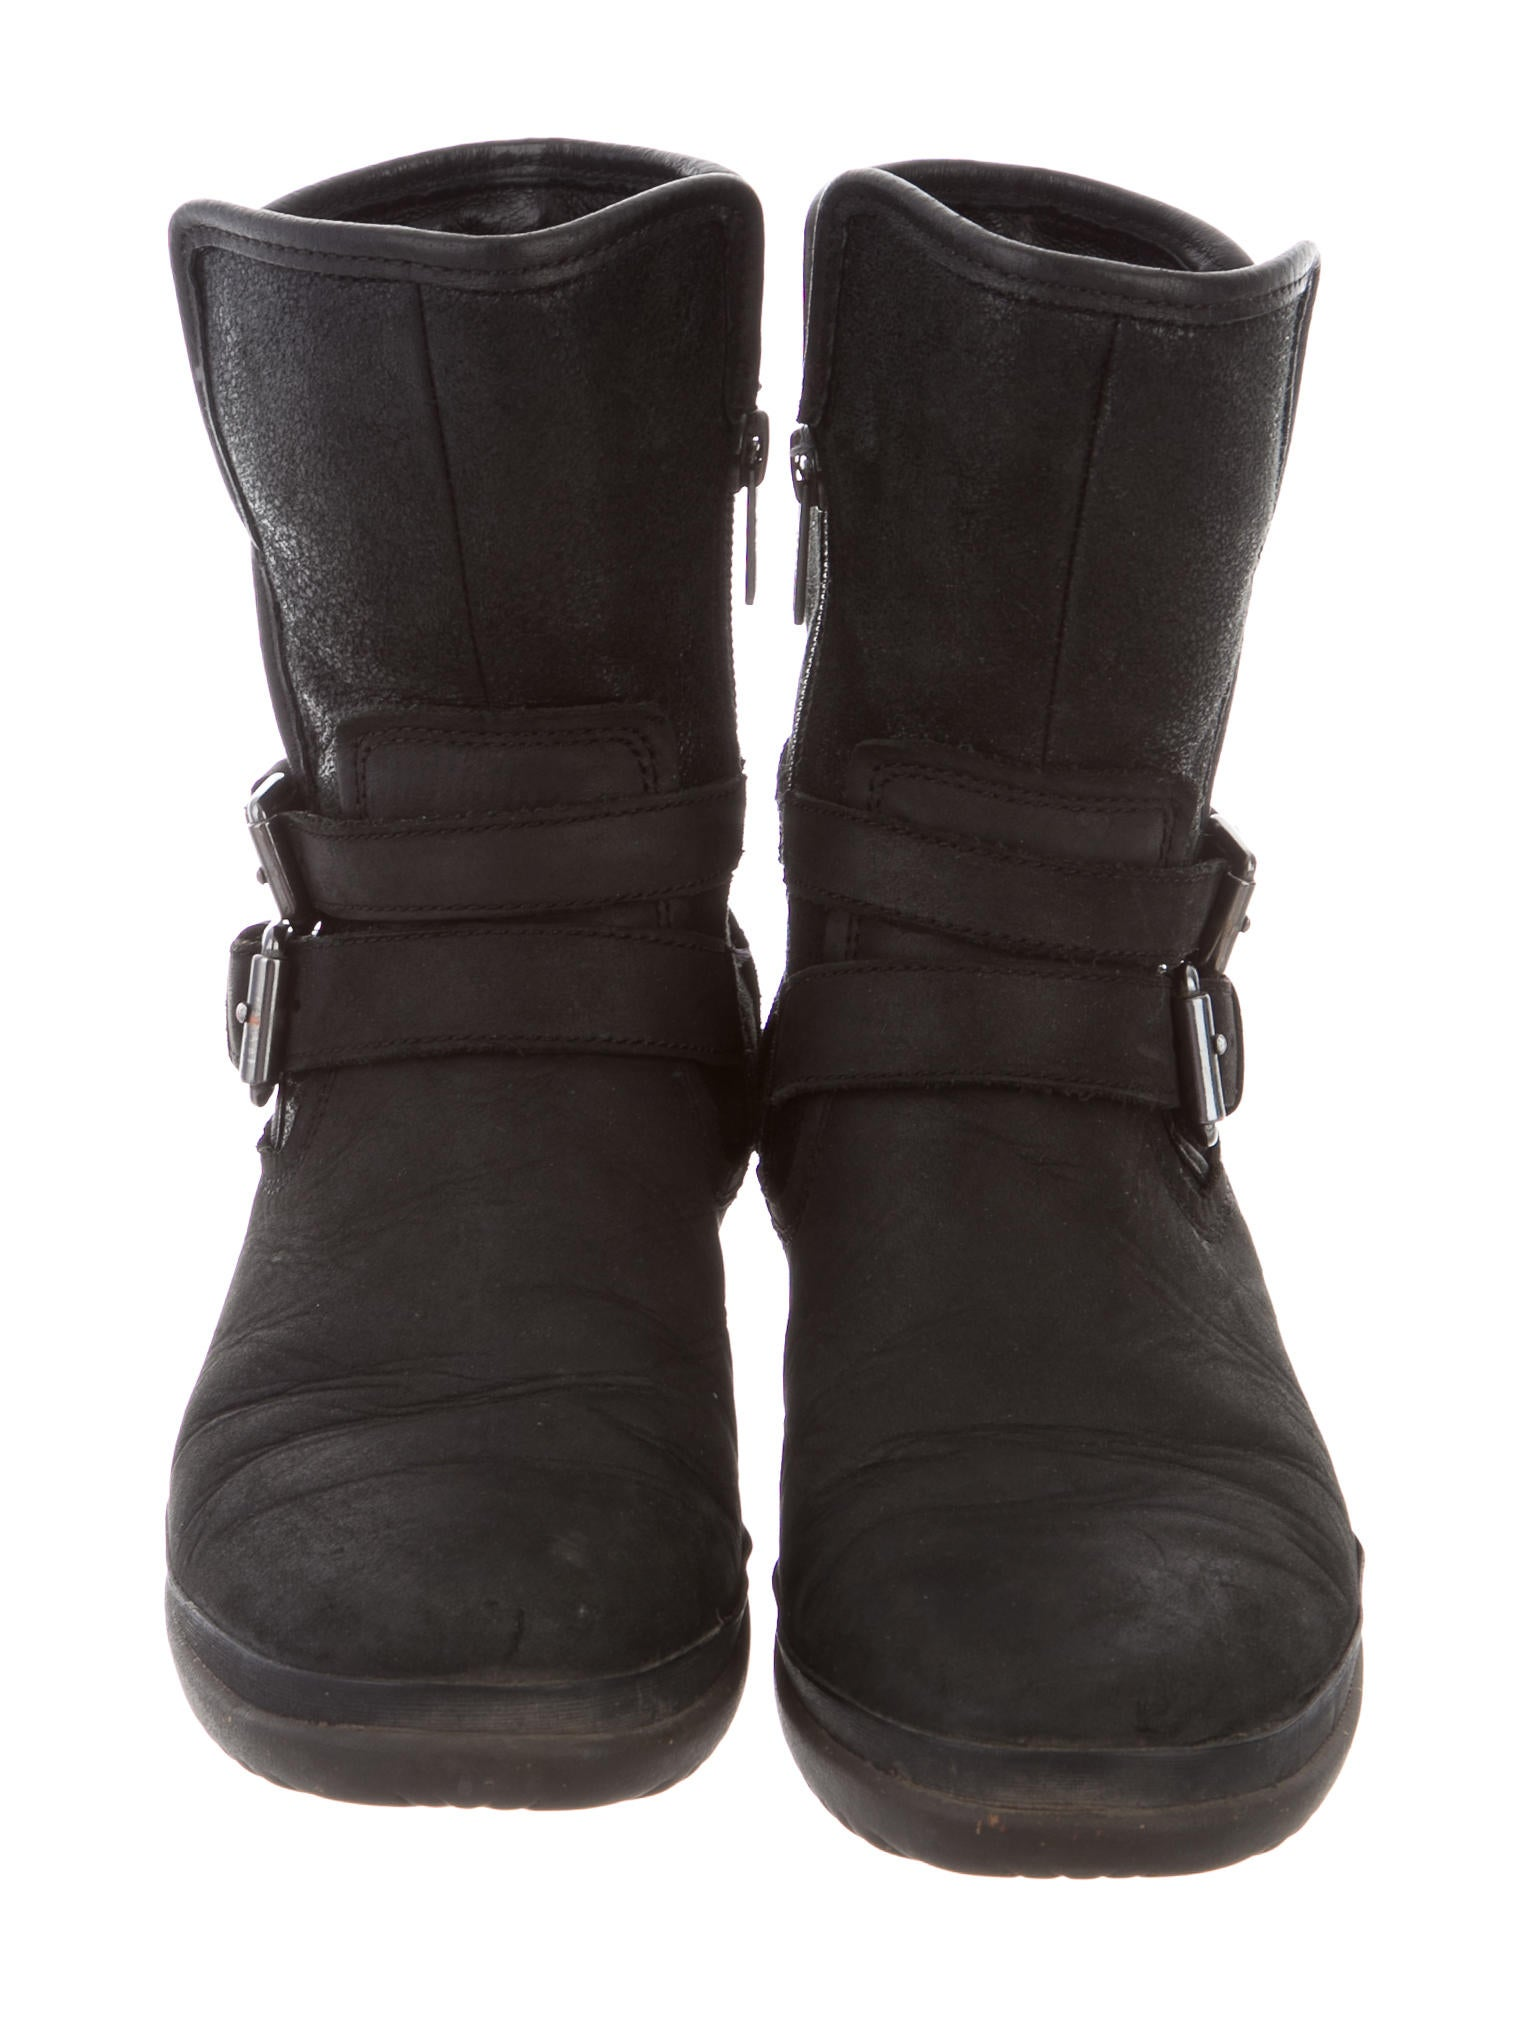 Discover women's ankle boots at Jo Mercer. Enjoy free delivery within Australia.